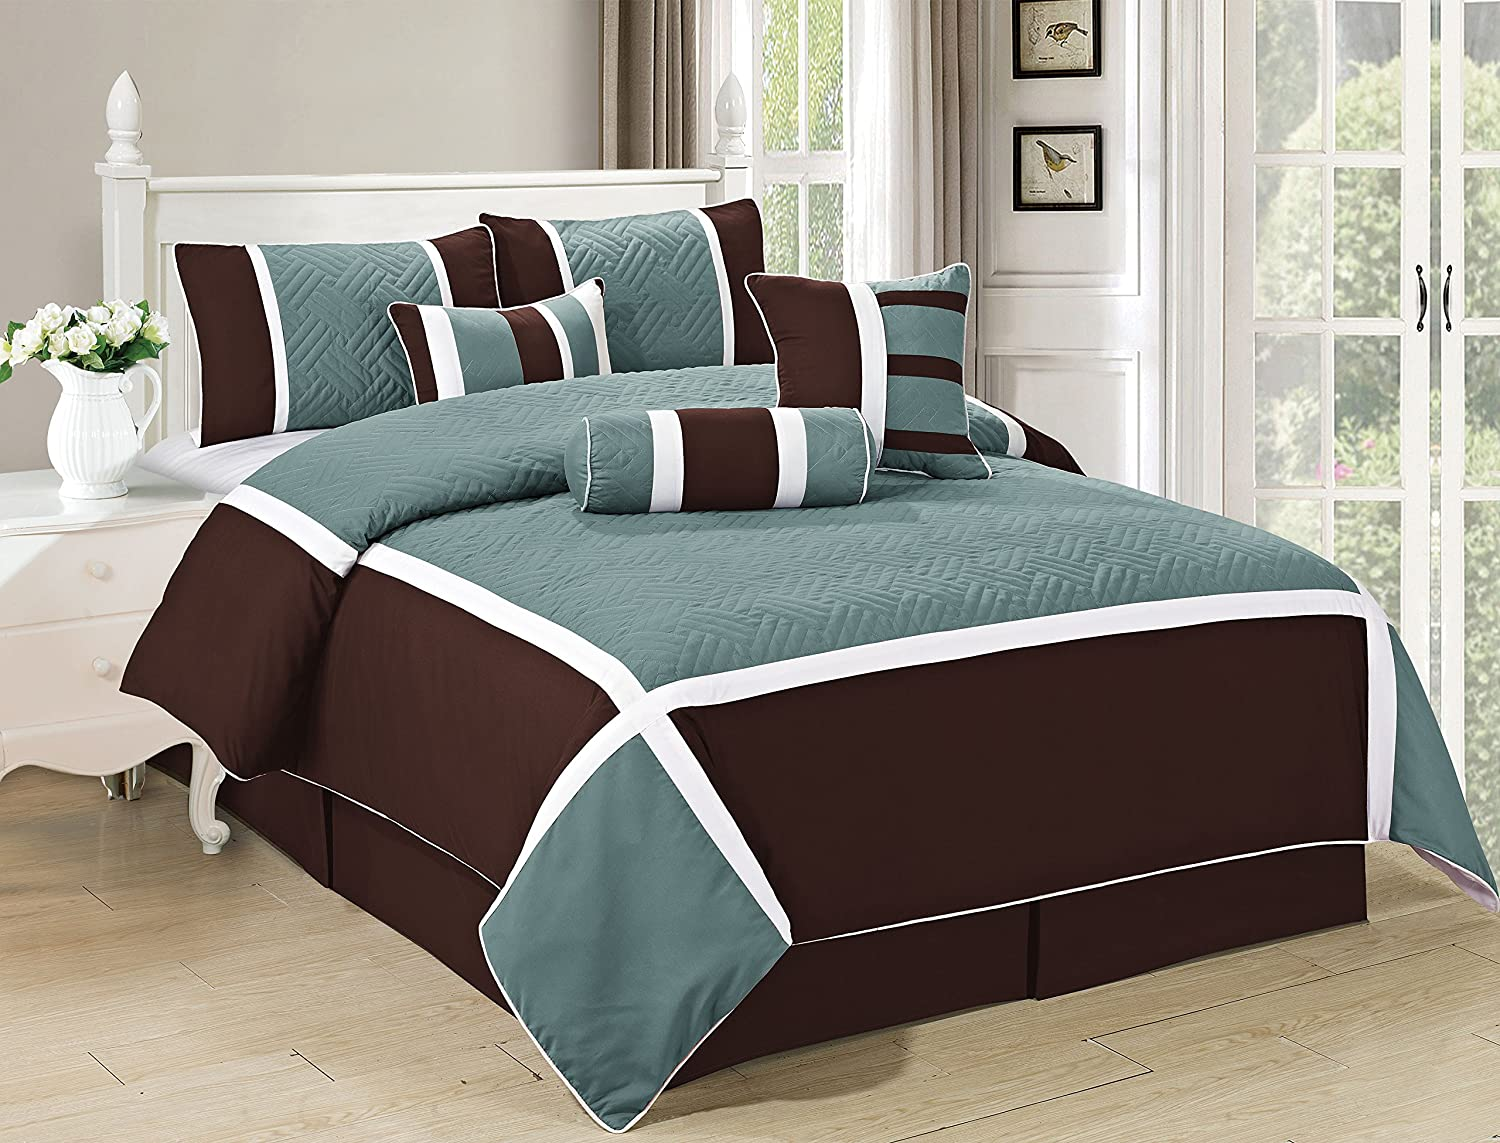 All American Collection New 7 Piece Embroidered Over-sized Comforter Set King, Turquoise/Brown